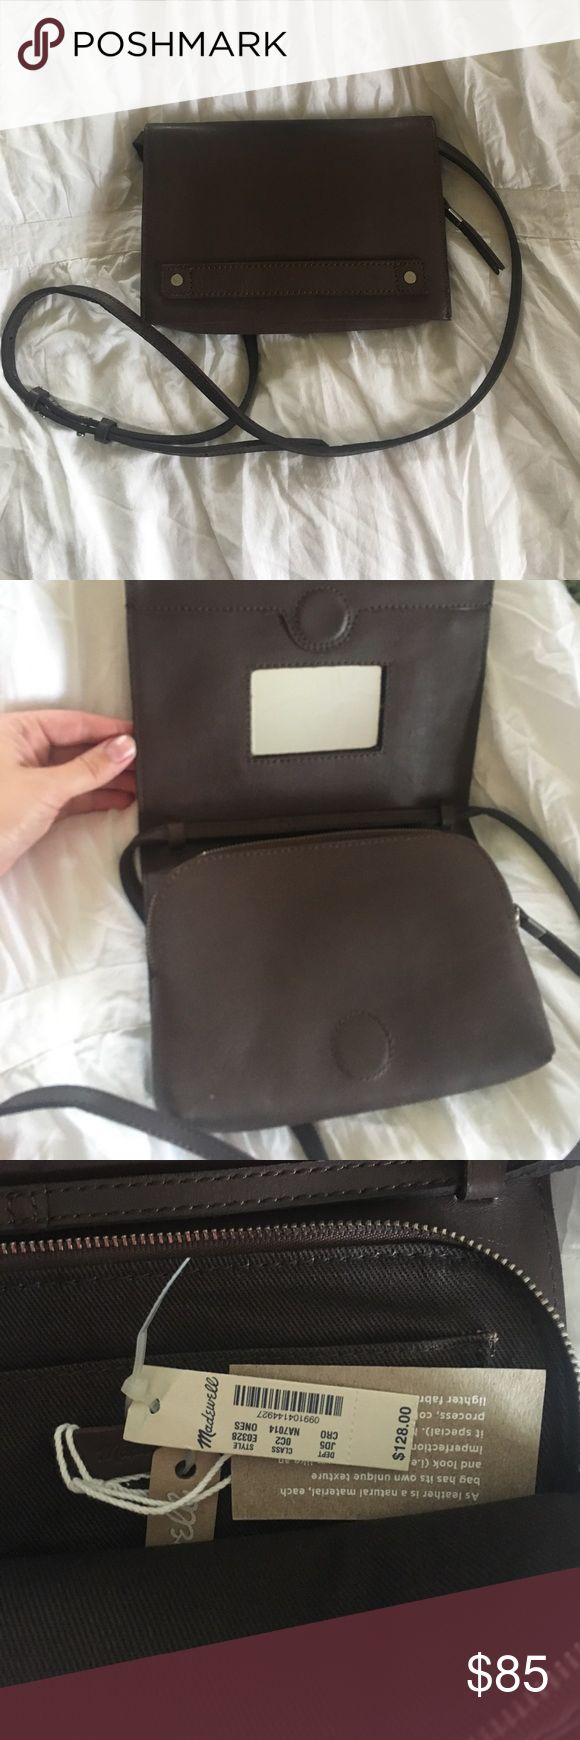 Madewell Morgan Cross Body Bag Grey NWT Never worn! Super cute crossbody bag from madewell. Dark grey leather, zip interior. Open to offers! Madewell Bags Crossbody Bags